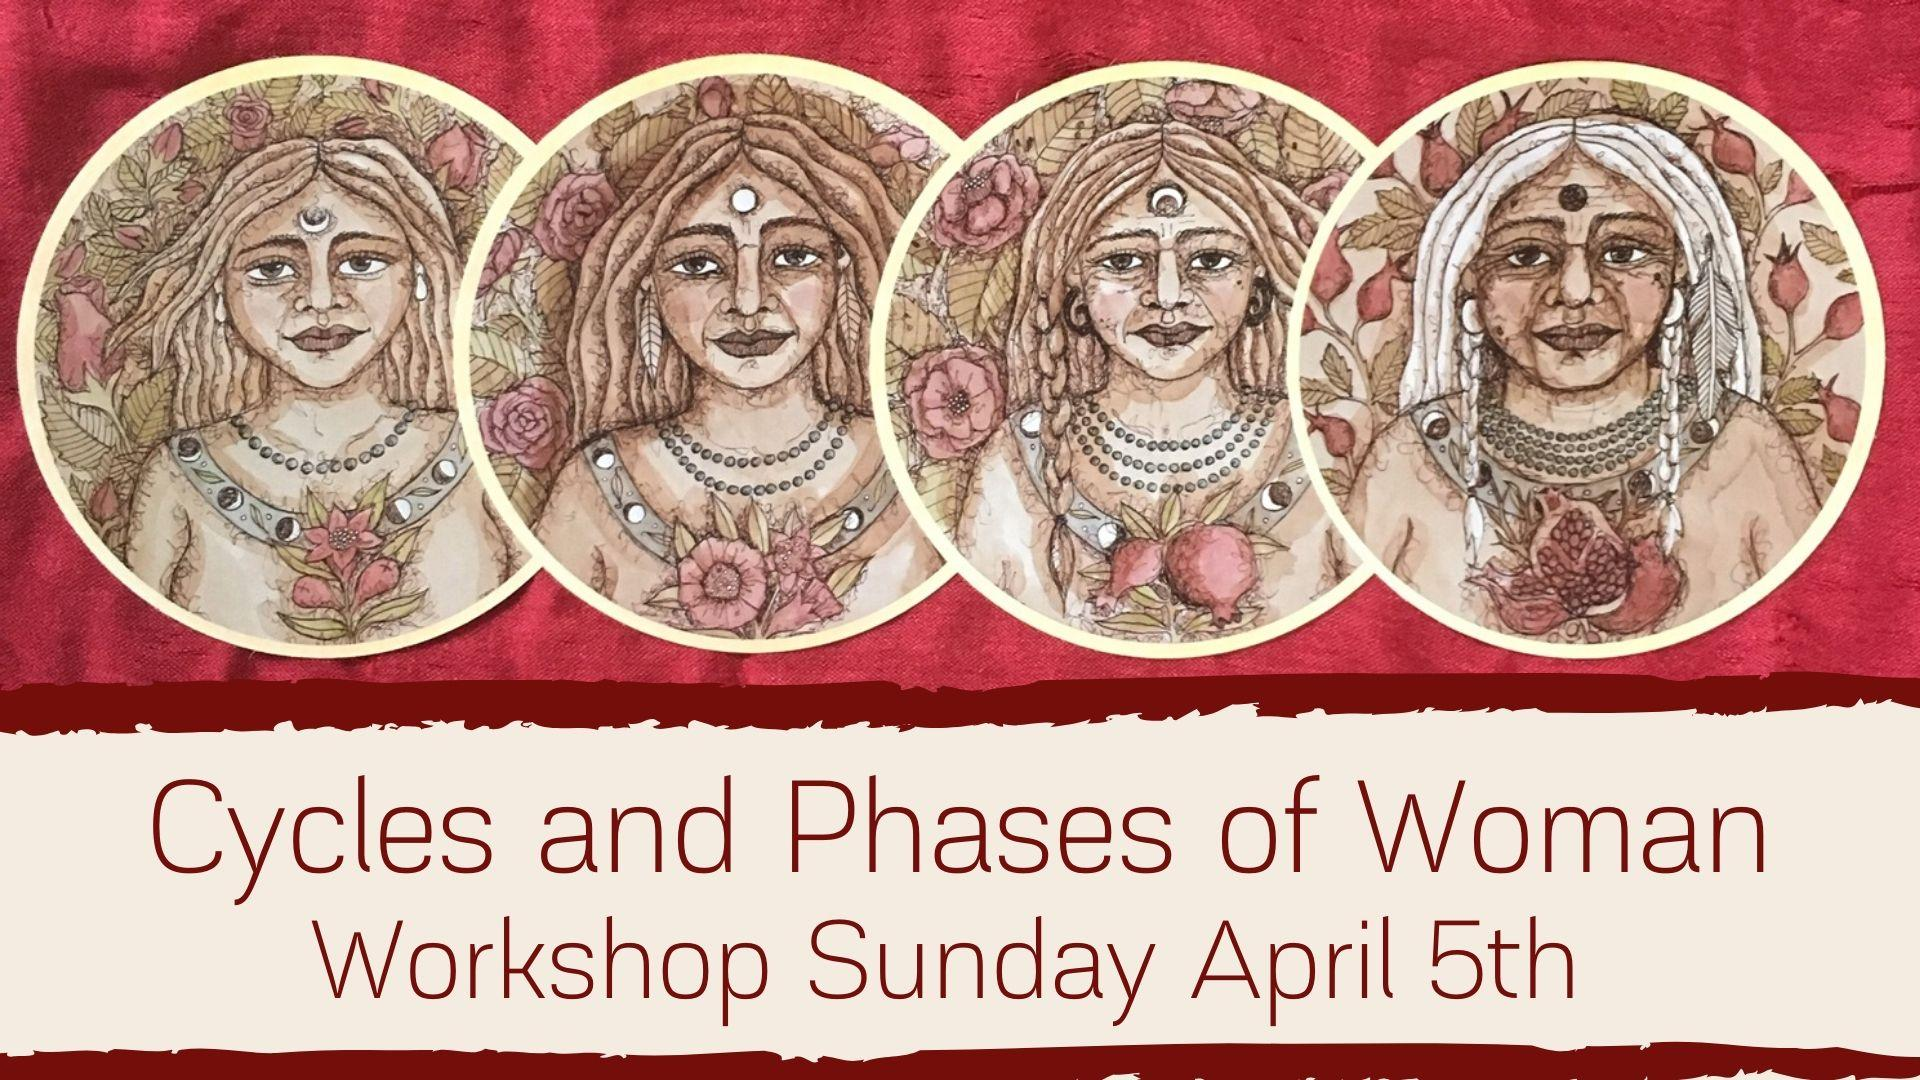 Cycles and Phases of Woman